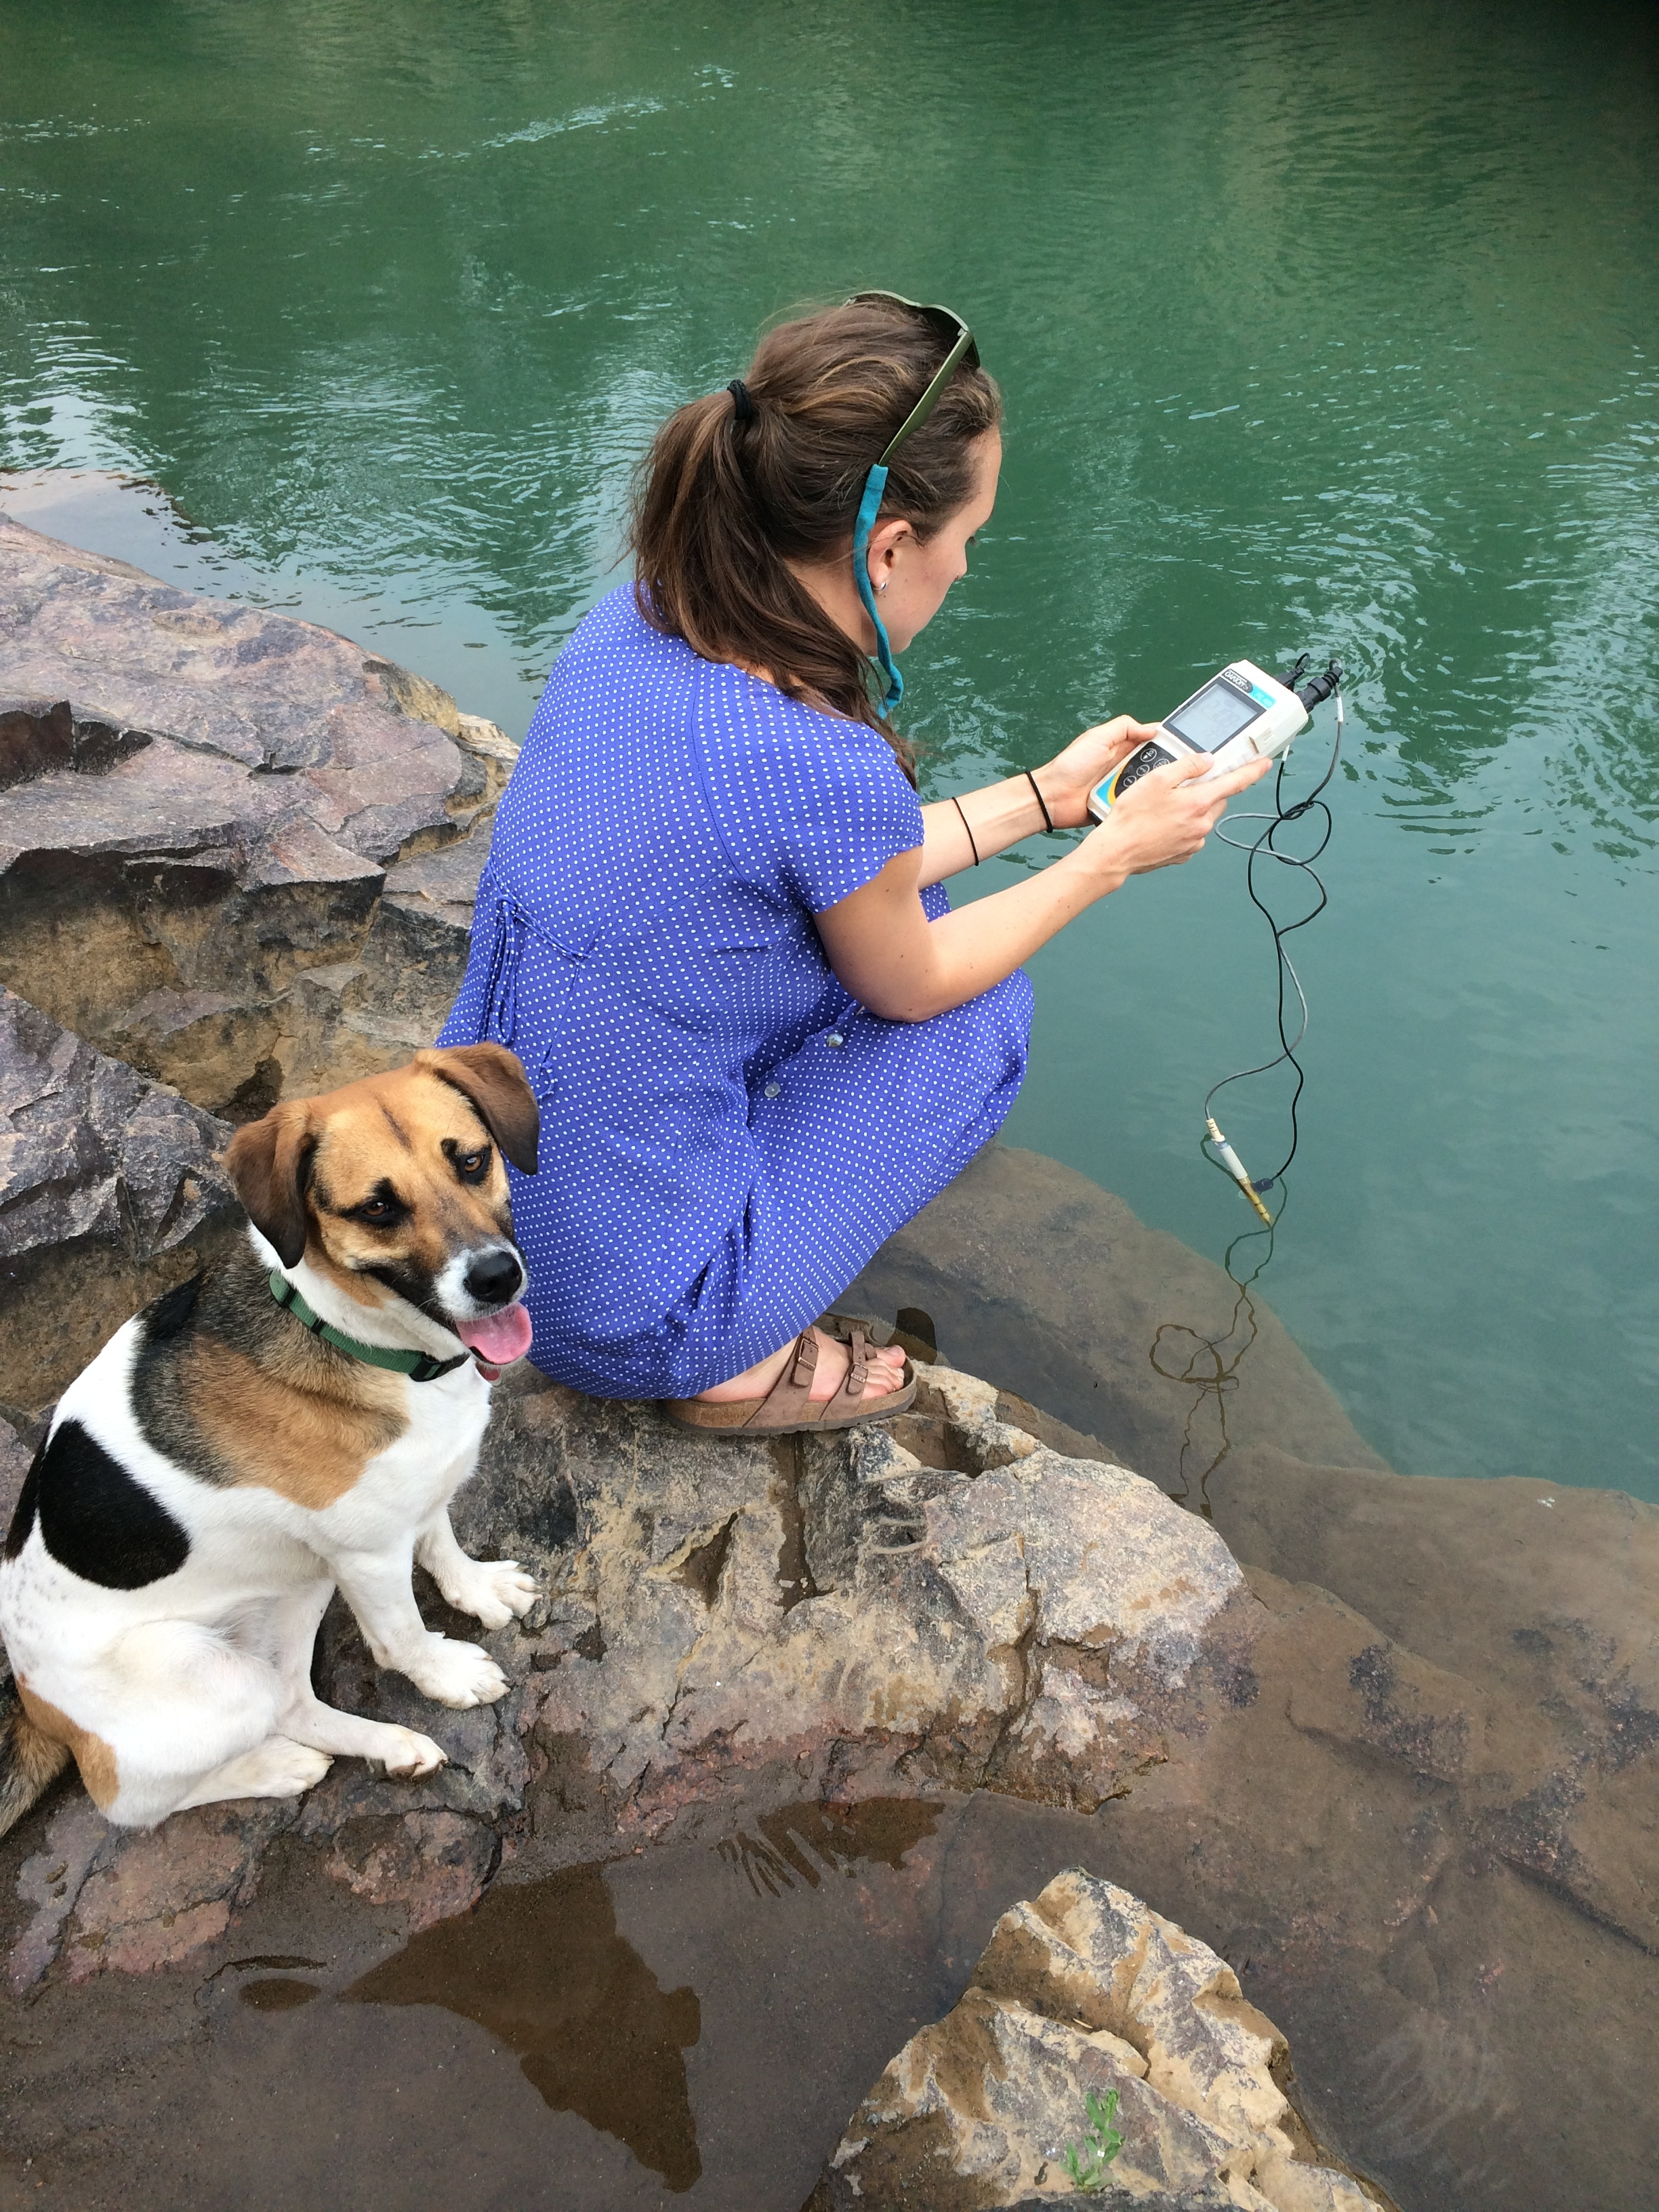 To capture baseline data, Moki and Laurel Sebastian recorded pH, water temperature, and conductivity at the various sites starting Friday June 15 before weekend rains.